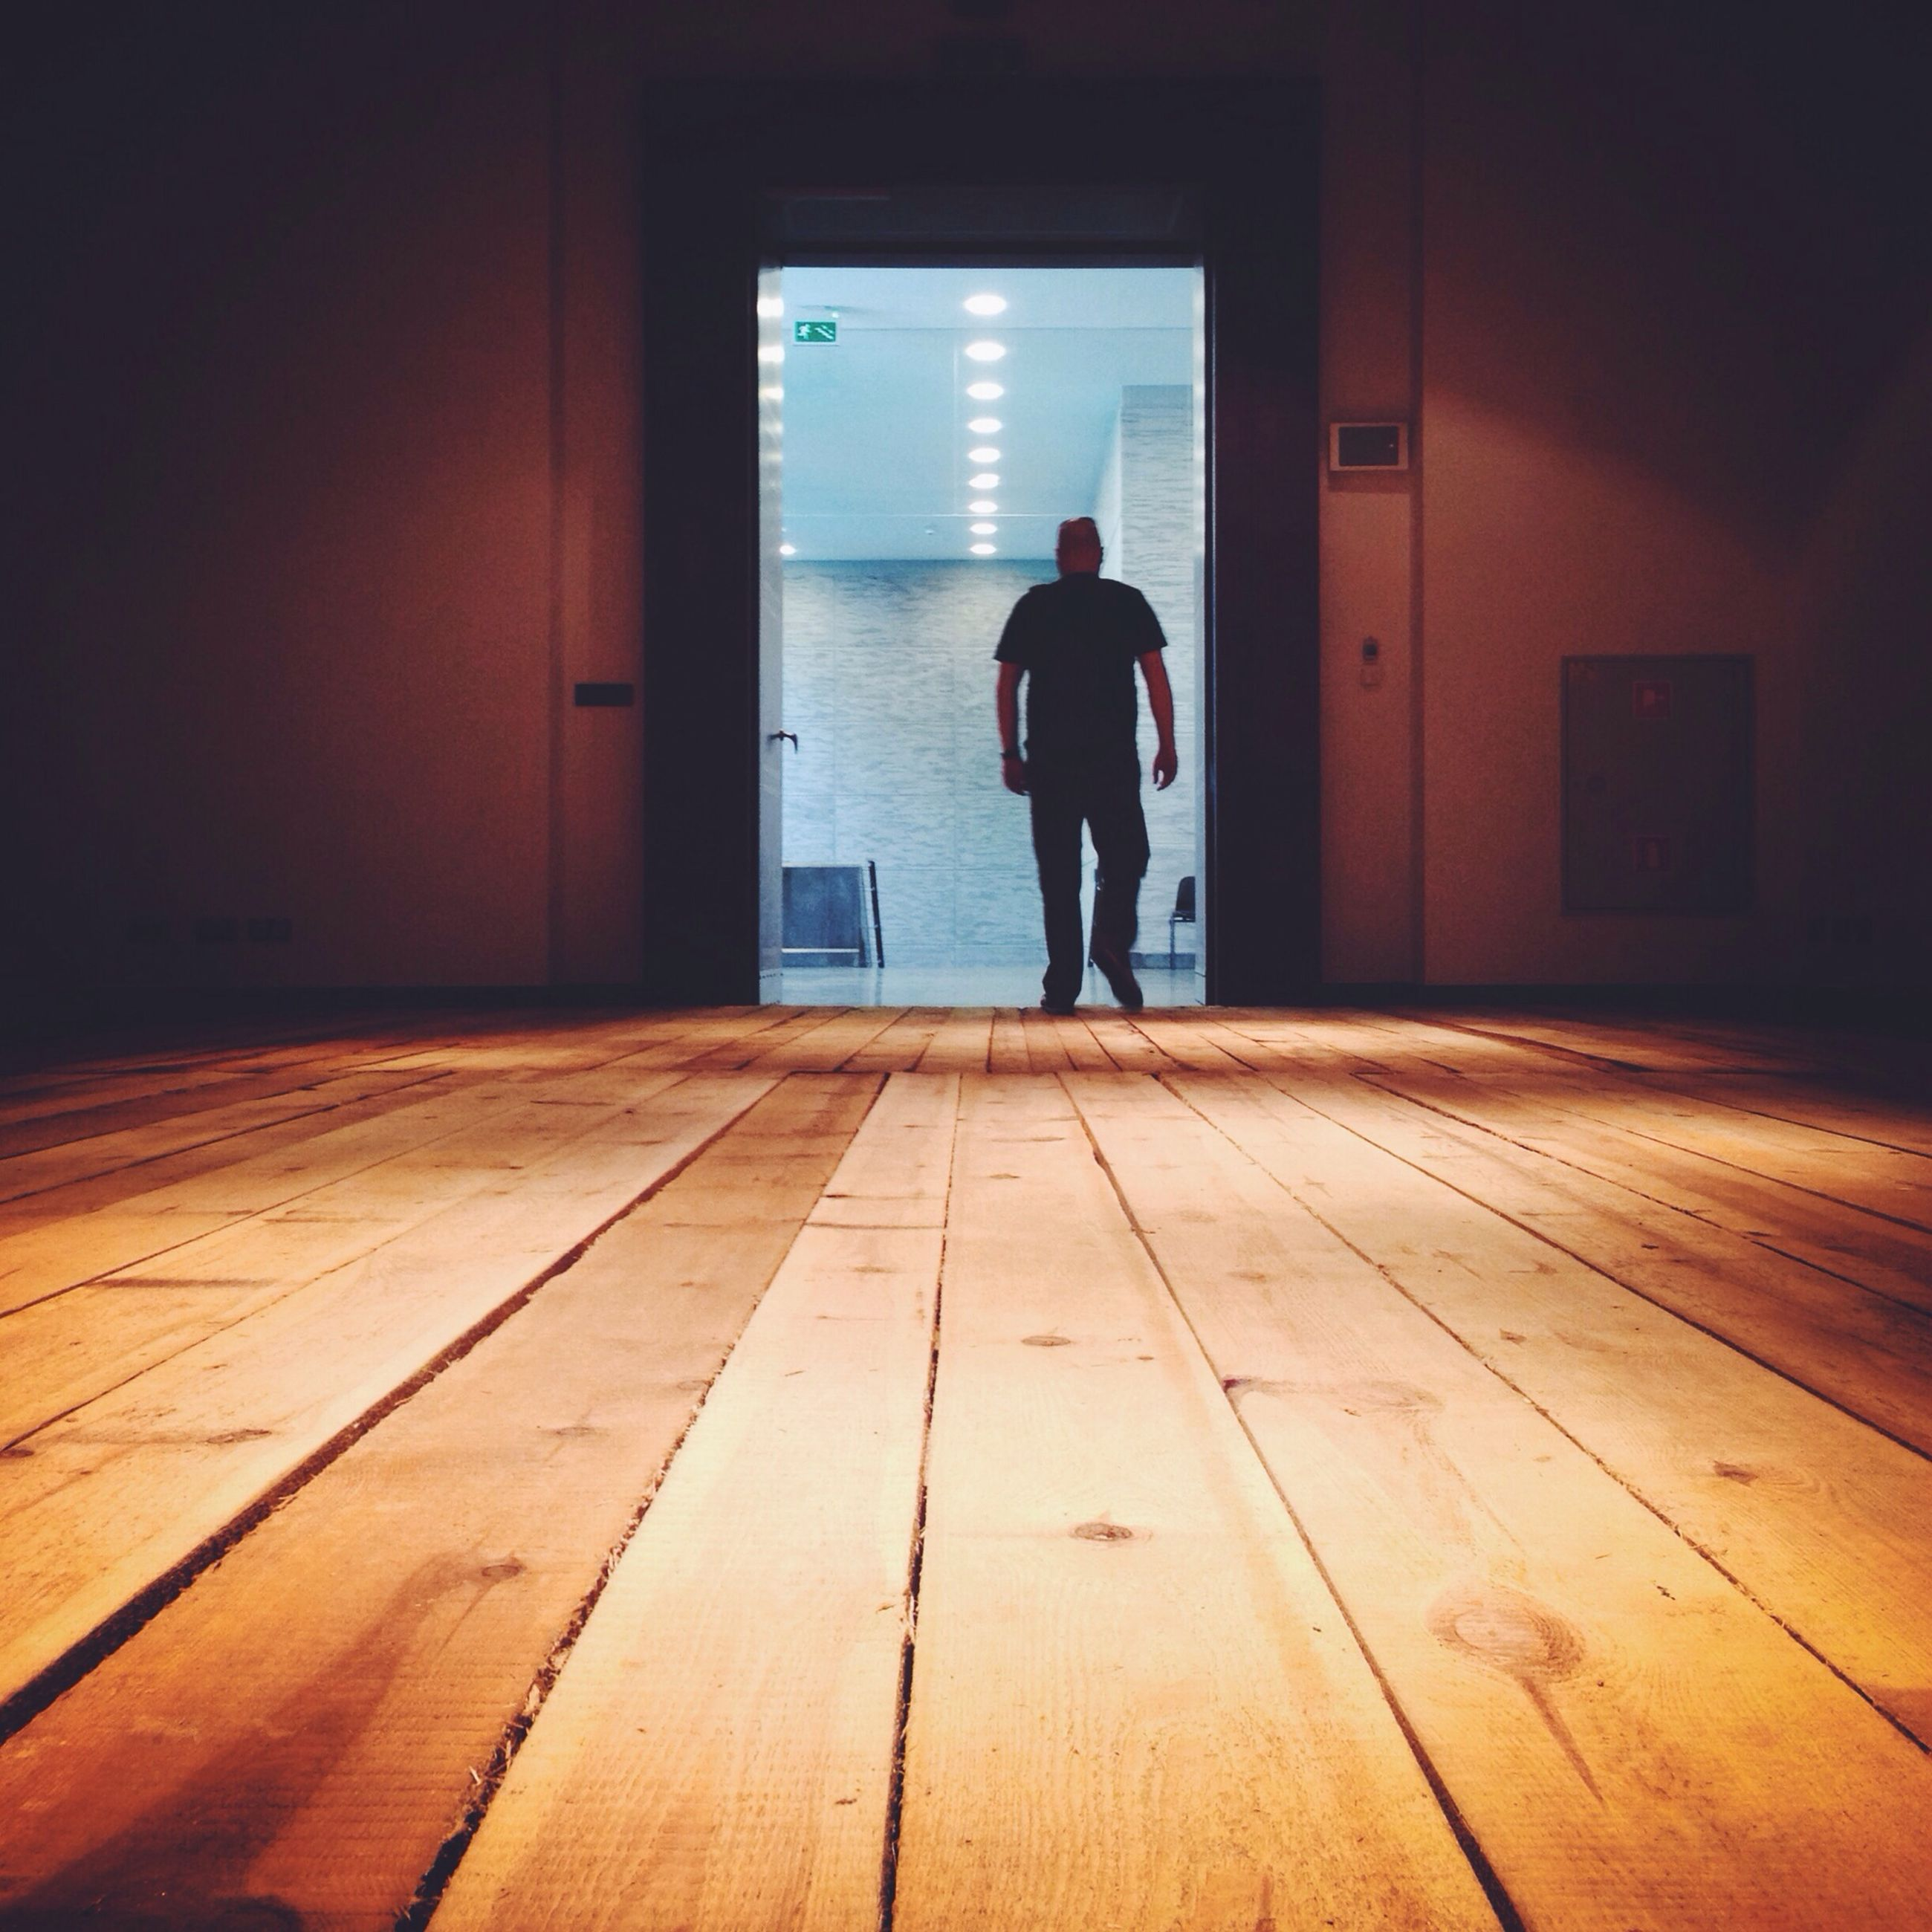 full length, indoors, lifestyles, rear view, architecture, standing, built structure, men, walking, leisure activity, silhouette, door, casual clothing, flooring, wall - building feature, corridor, person, one man only